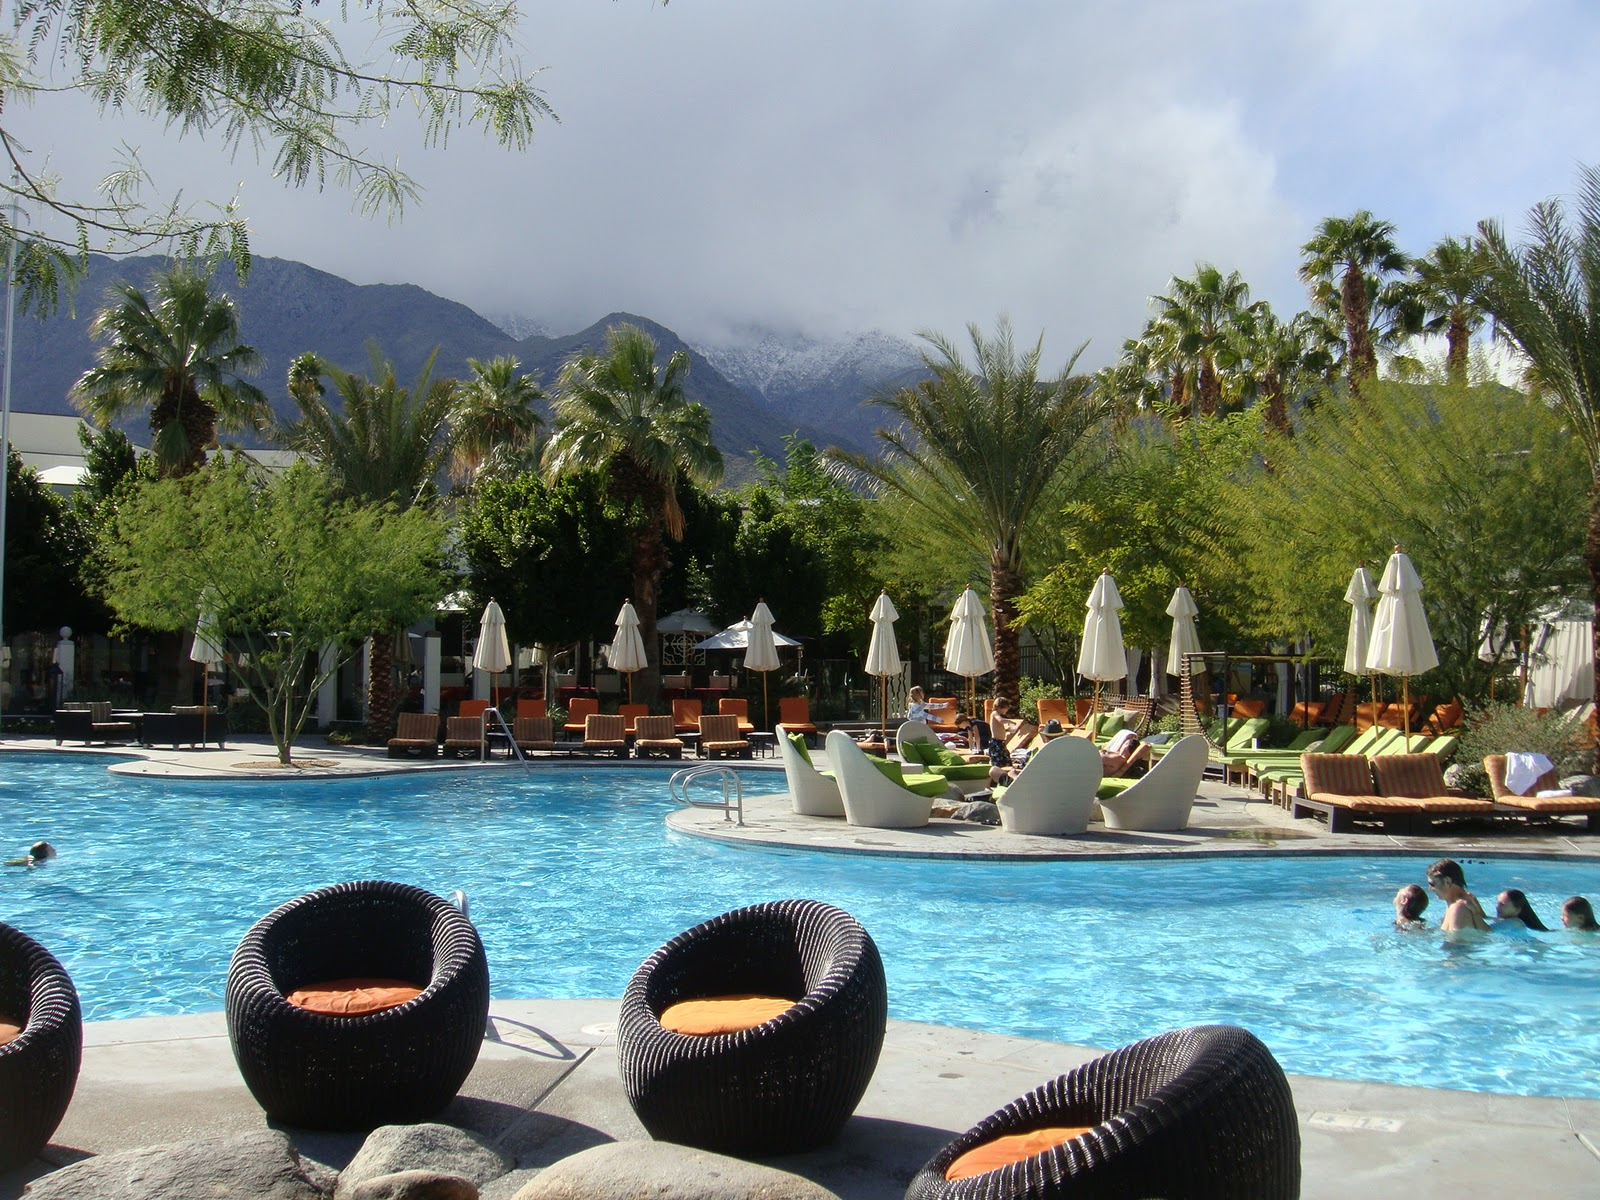 Poolside at riviera palm springs sealaura for The riviera palm springs ca